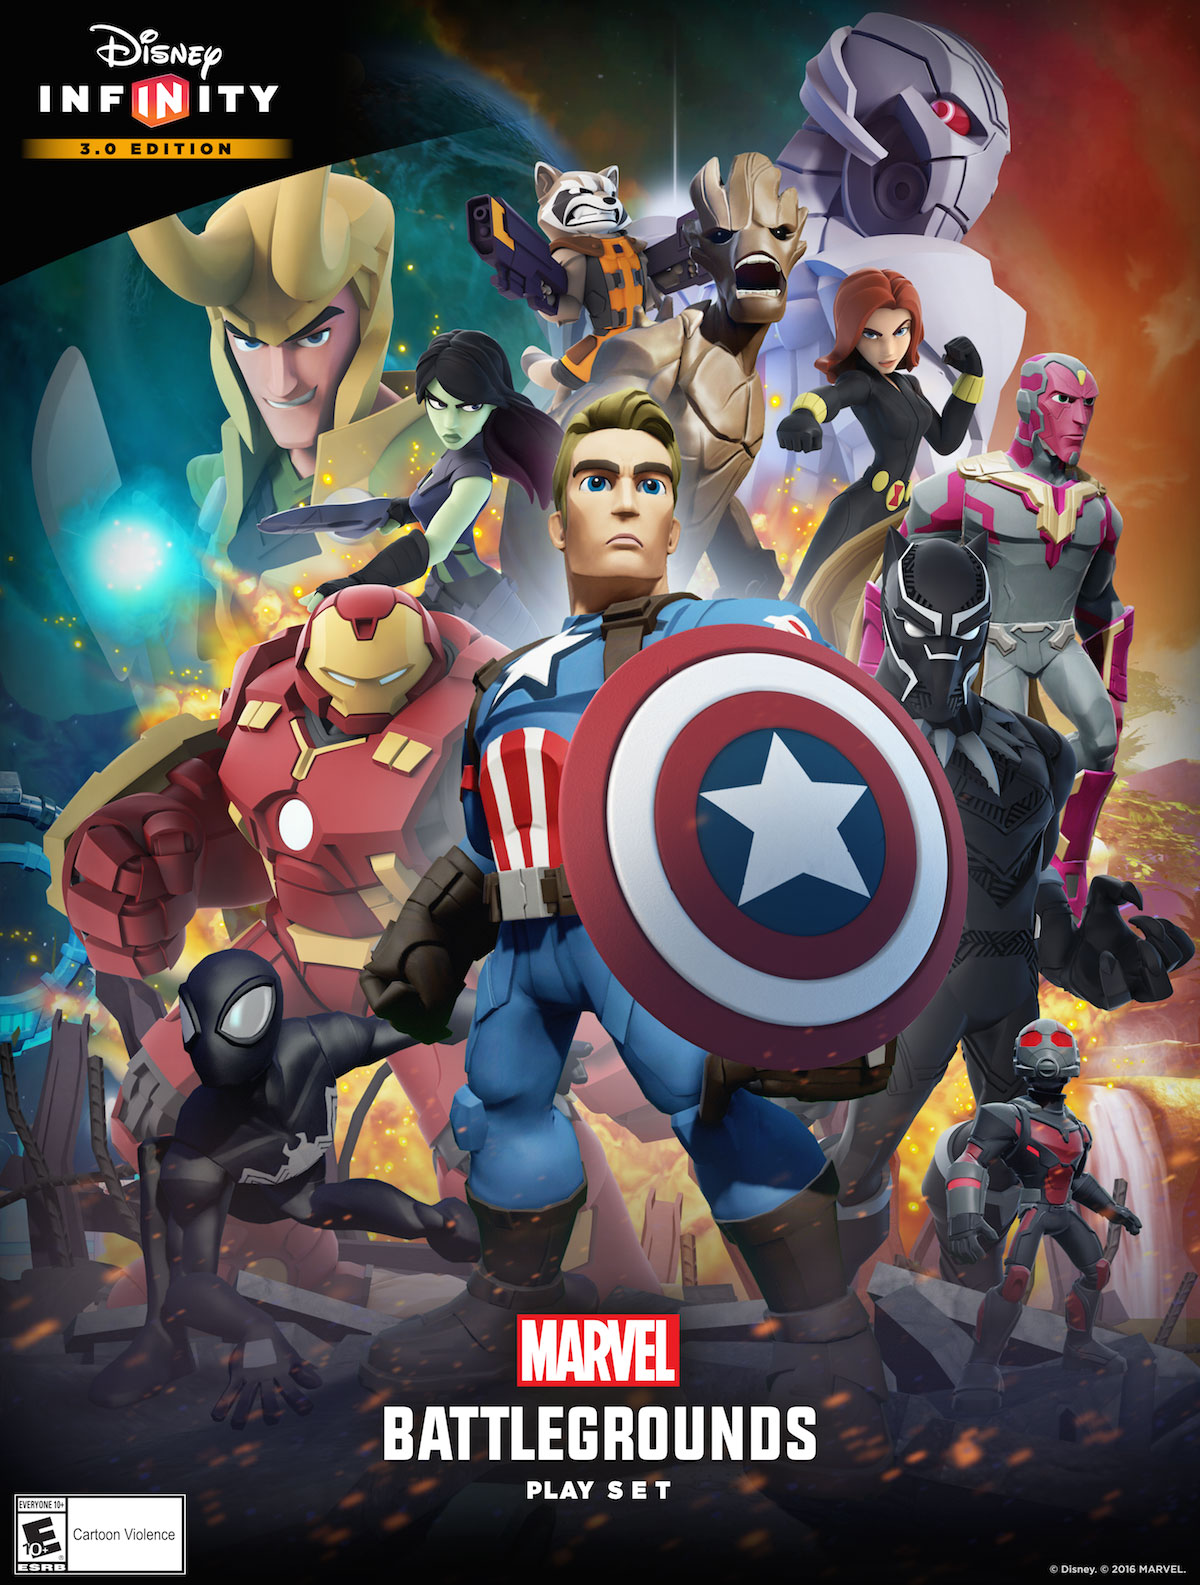 Marvel-Battlegrounds-Play-Set-Poster